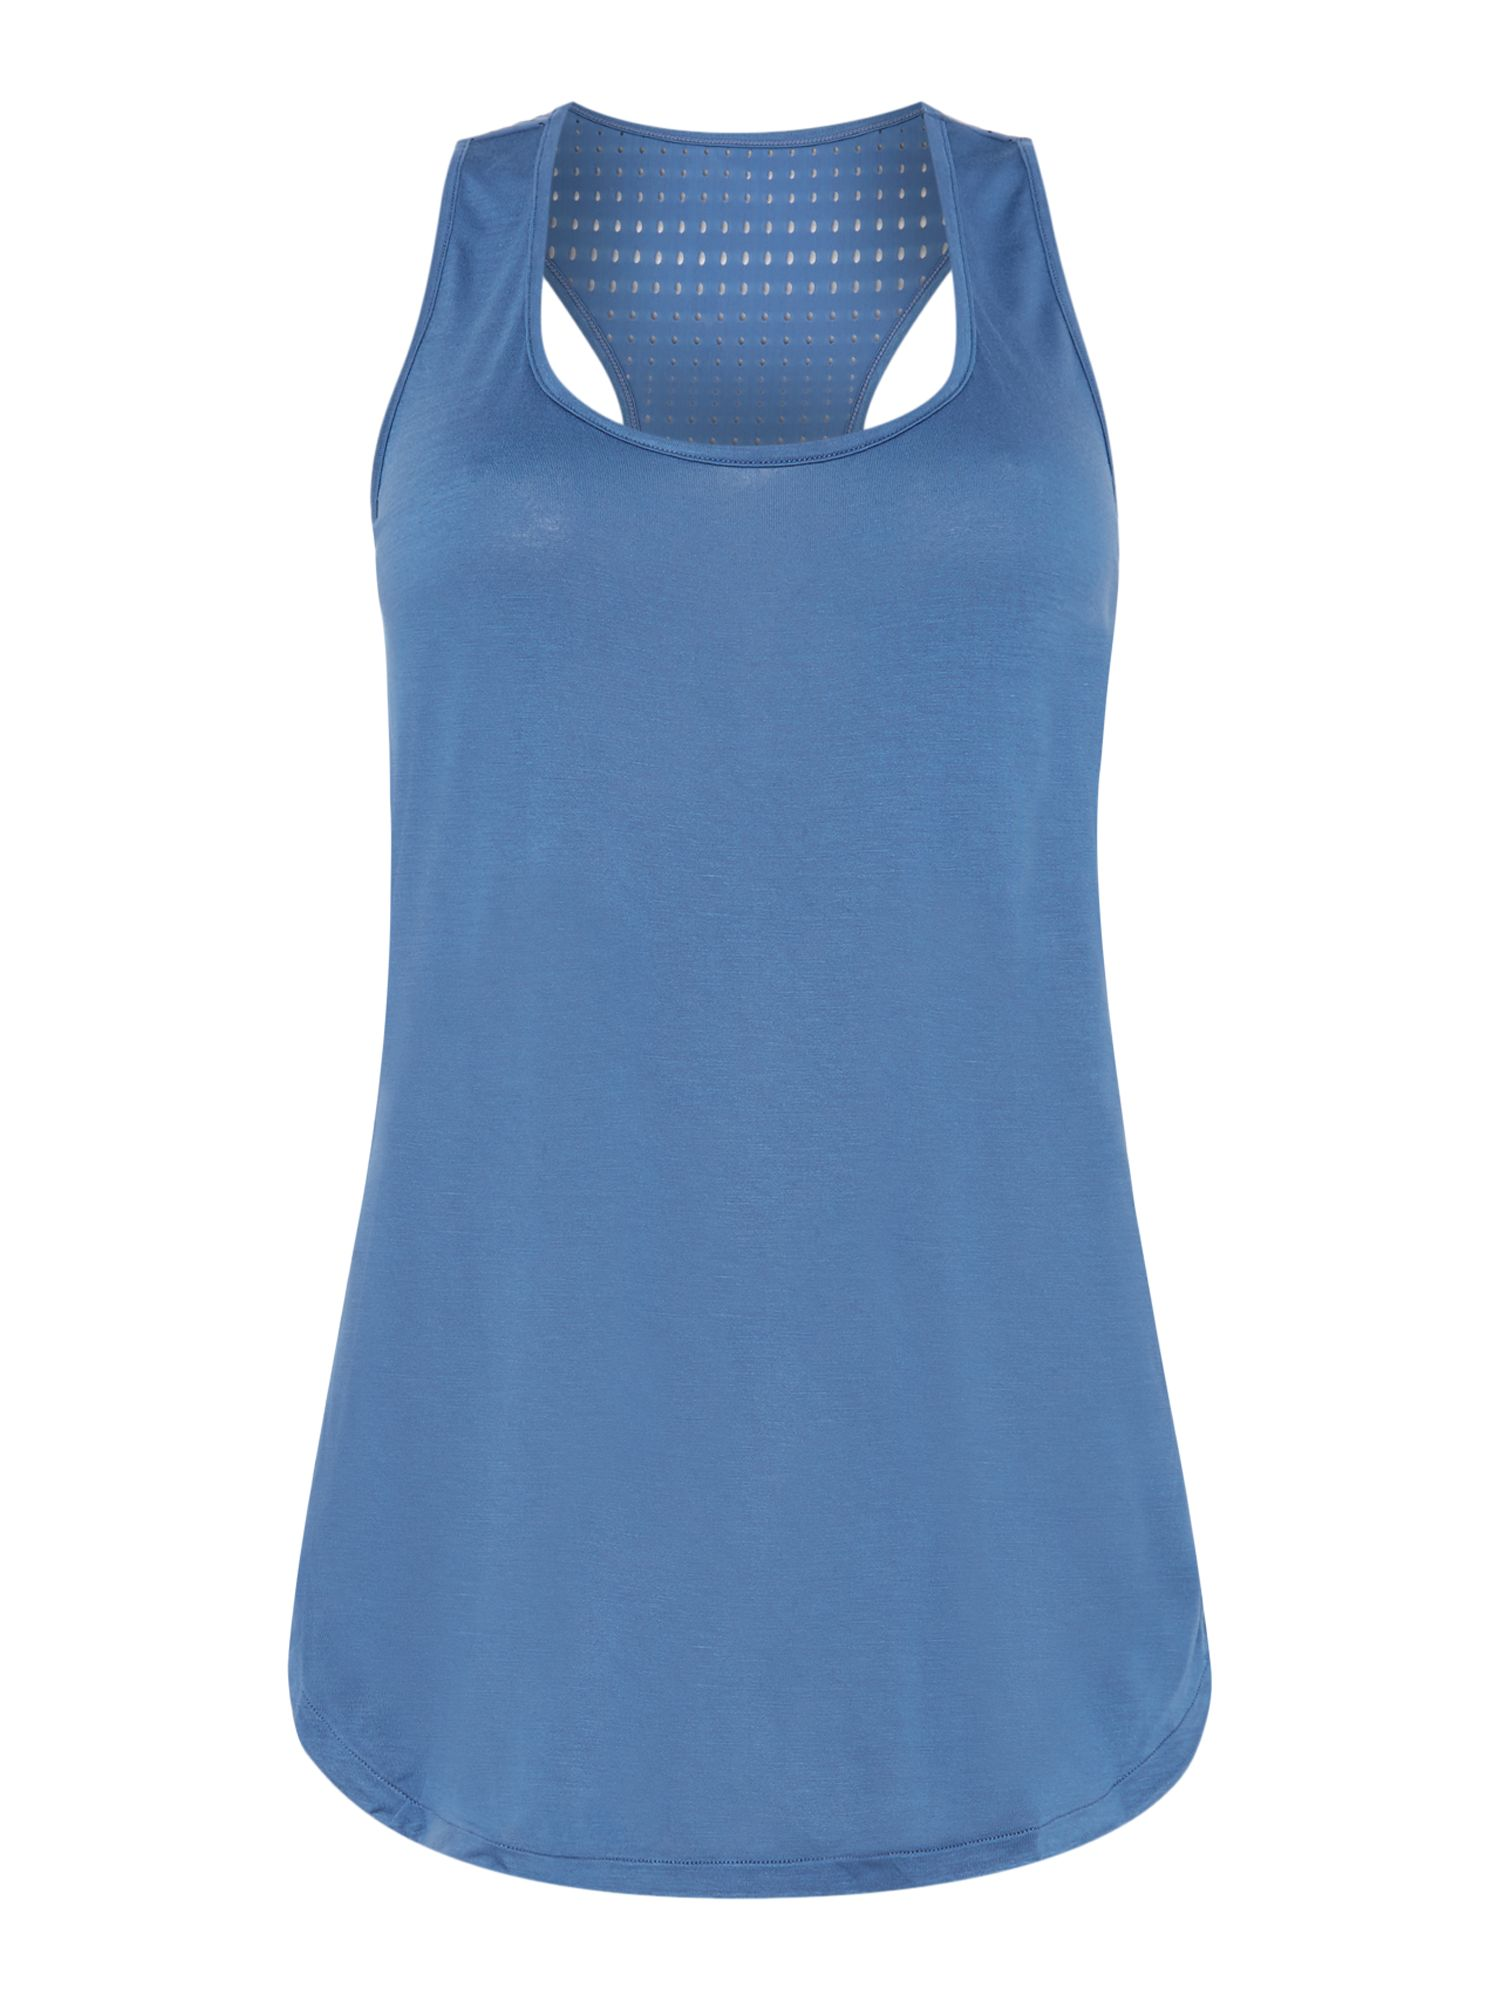 Seafolly Horizon luxe essentials air singlet sports top Blue